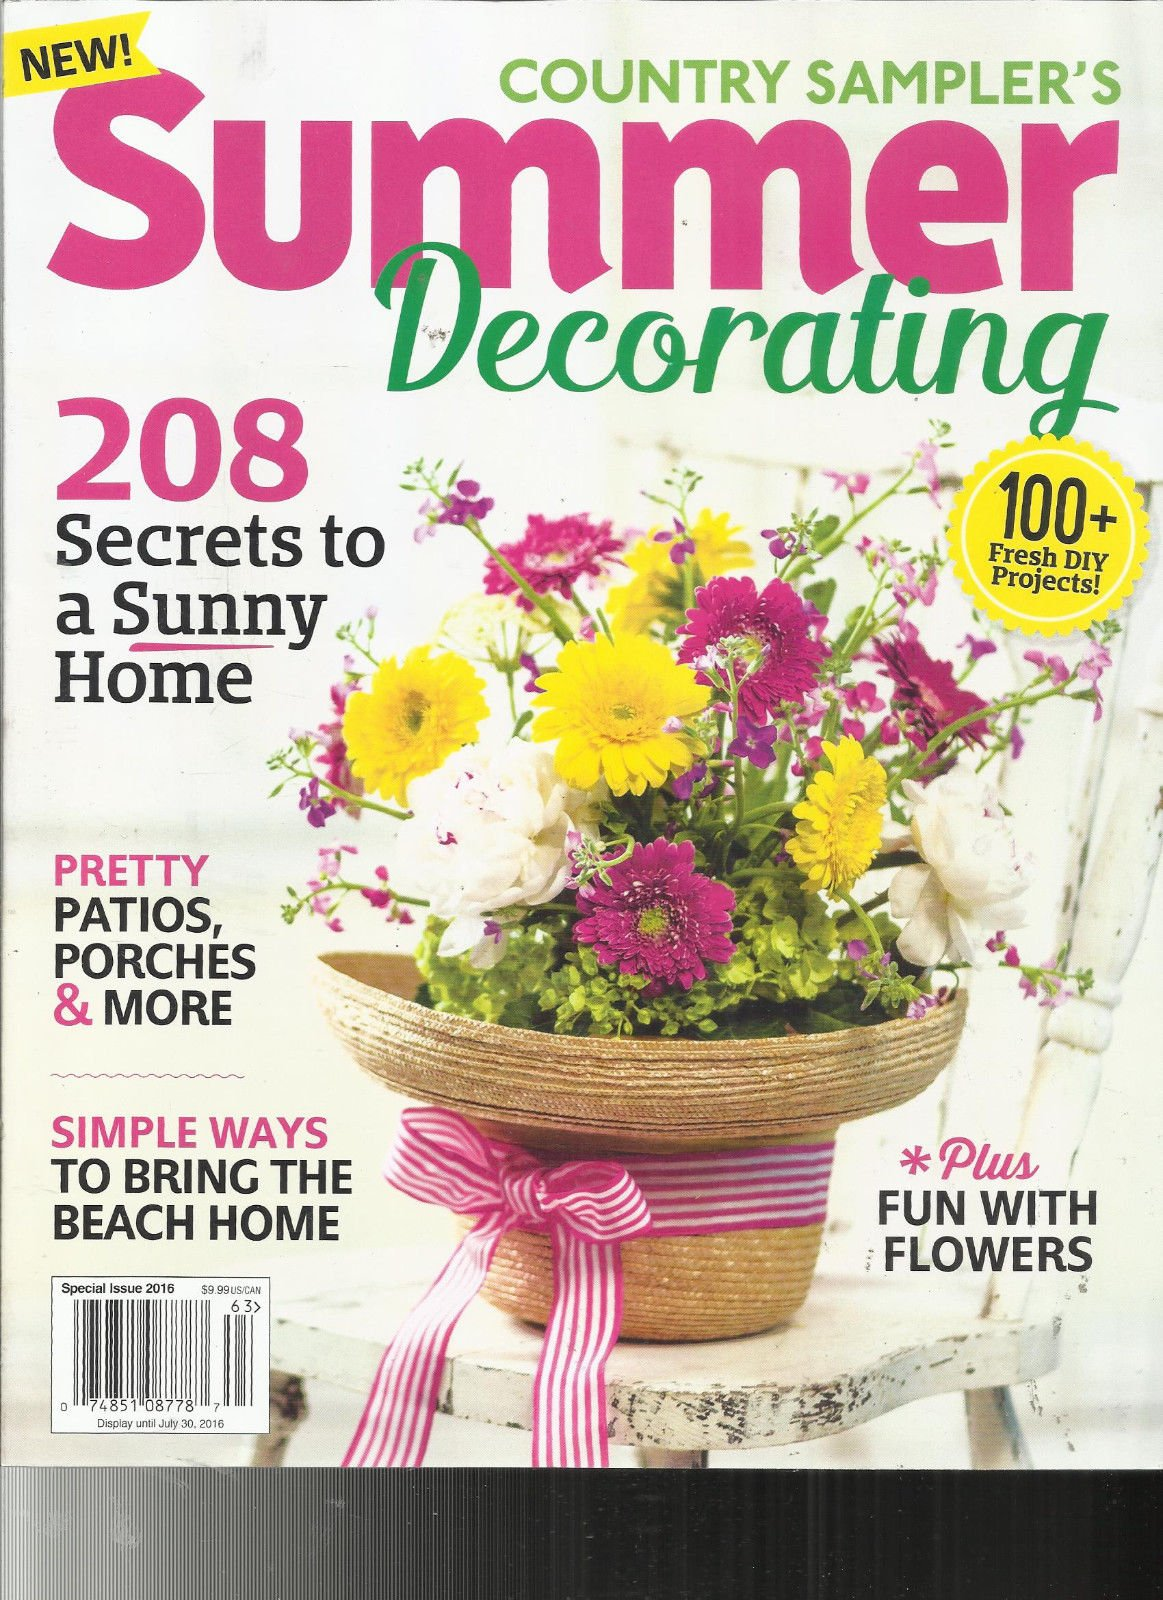 Country Sampler's Summer Decorating 2016